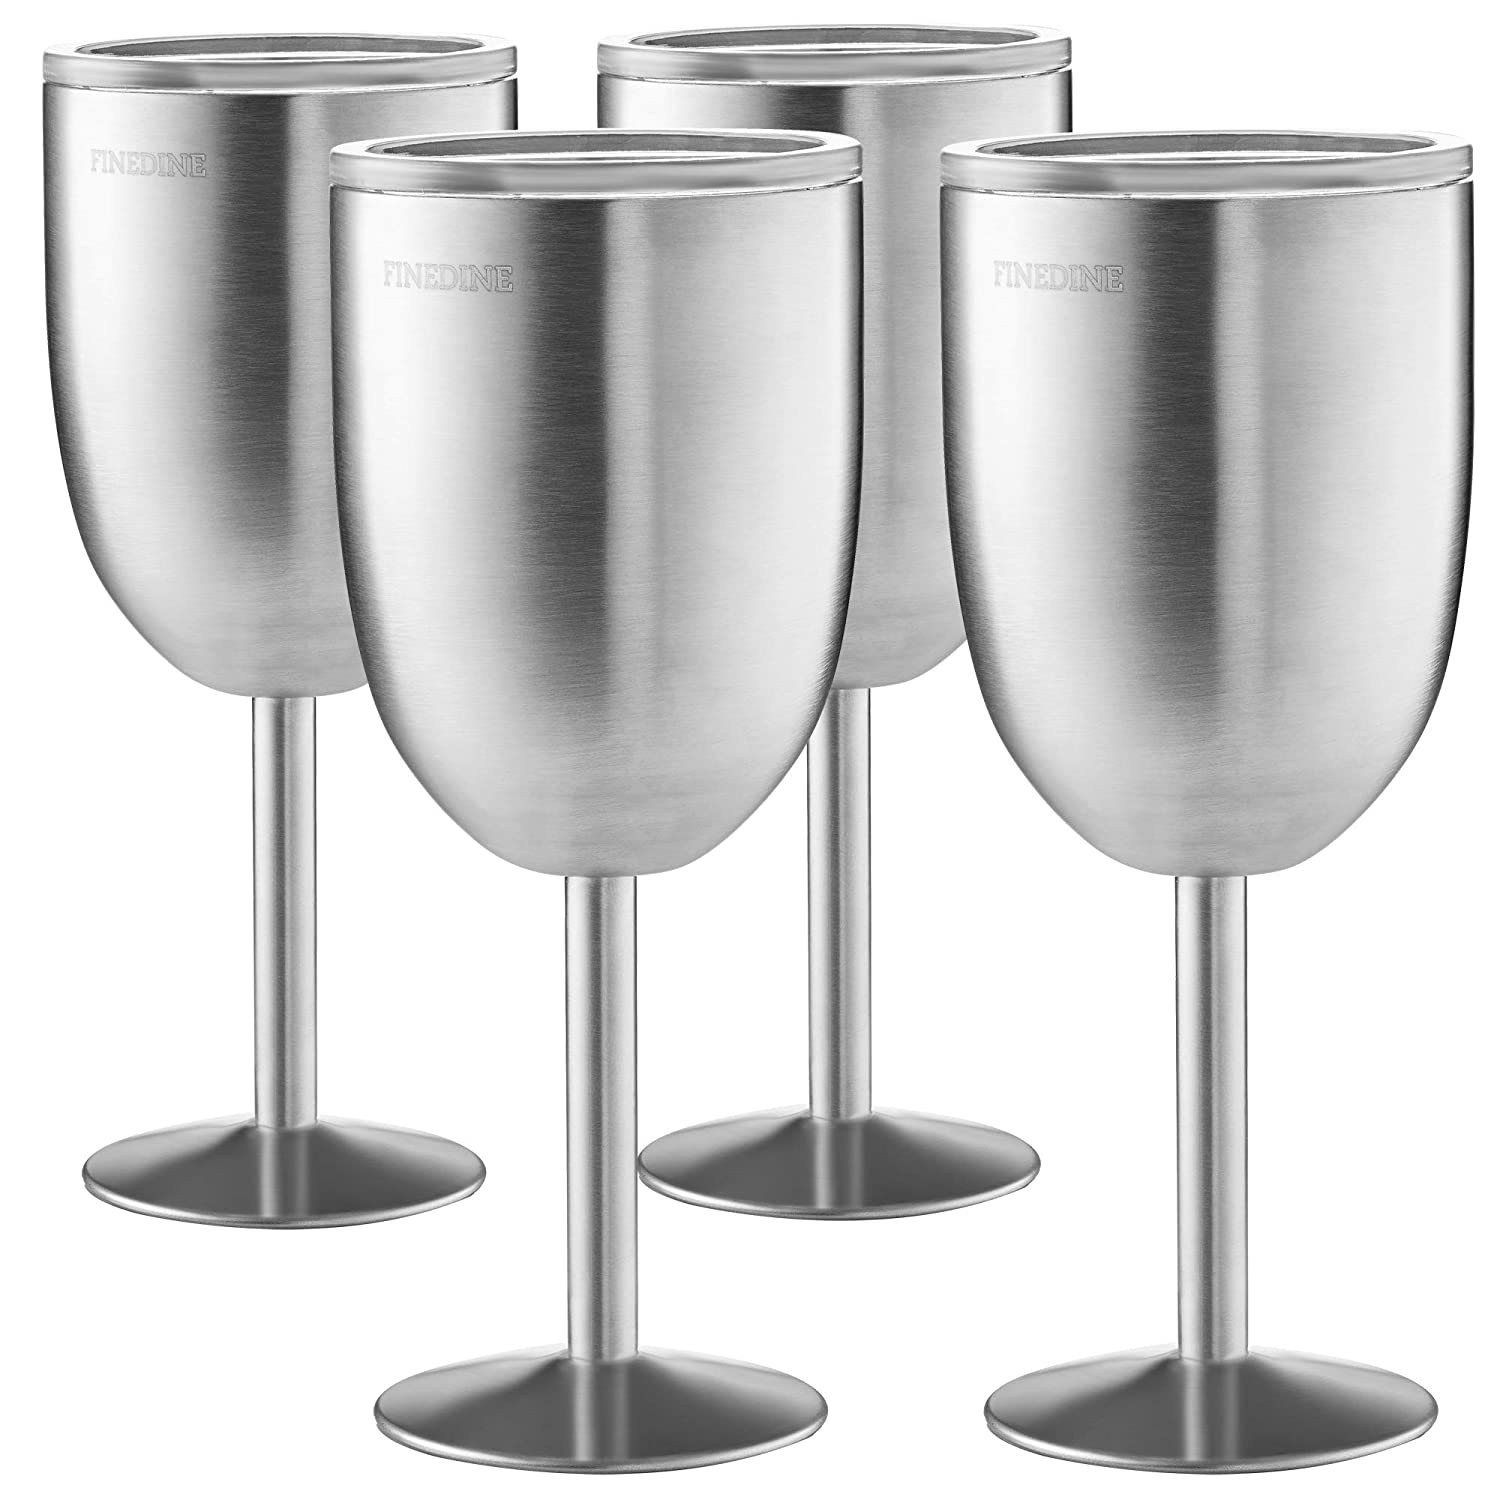 49a1f94f13a FineDine Premium Grade 18/8 Stainless Steel Wine Glasses 12 Oz. Double-Walled  Insulated Unbreakable Goblets Stemmed Wine Glass BPA-Free Leak Resistant  Lid ...